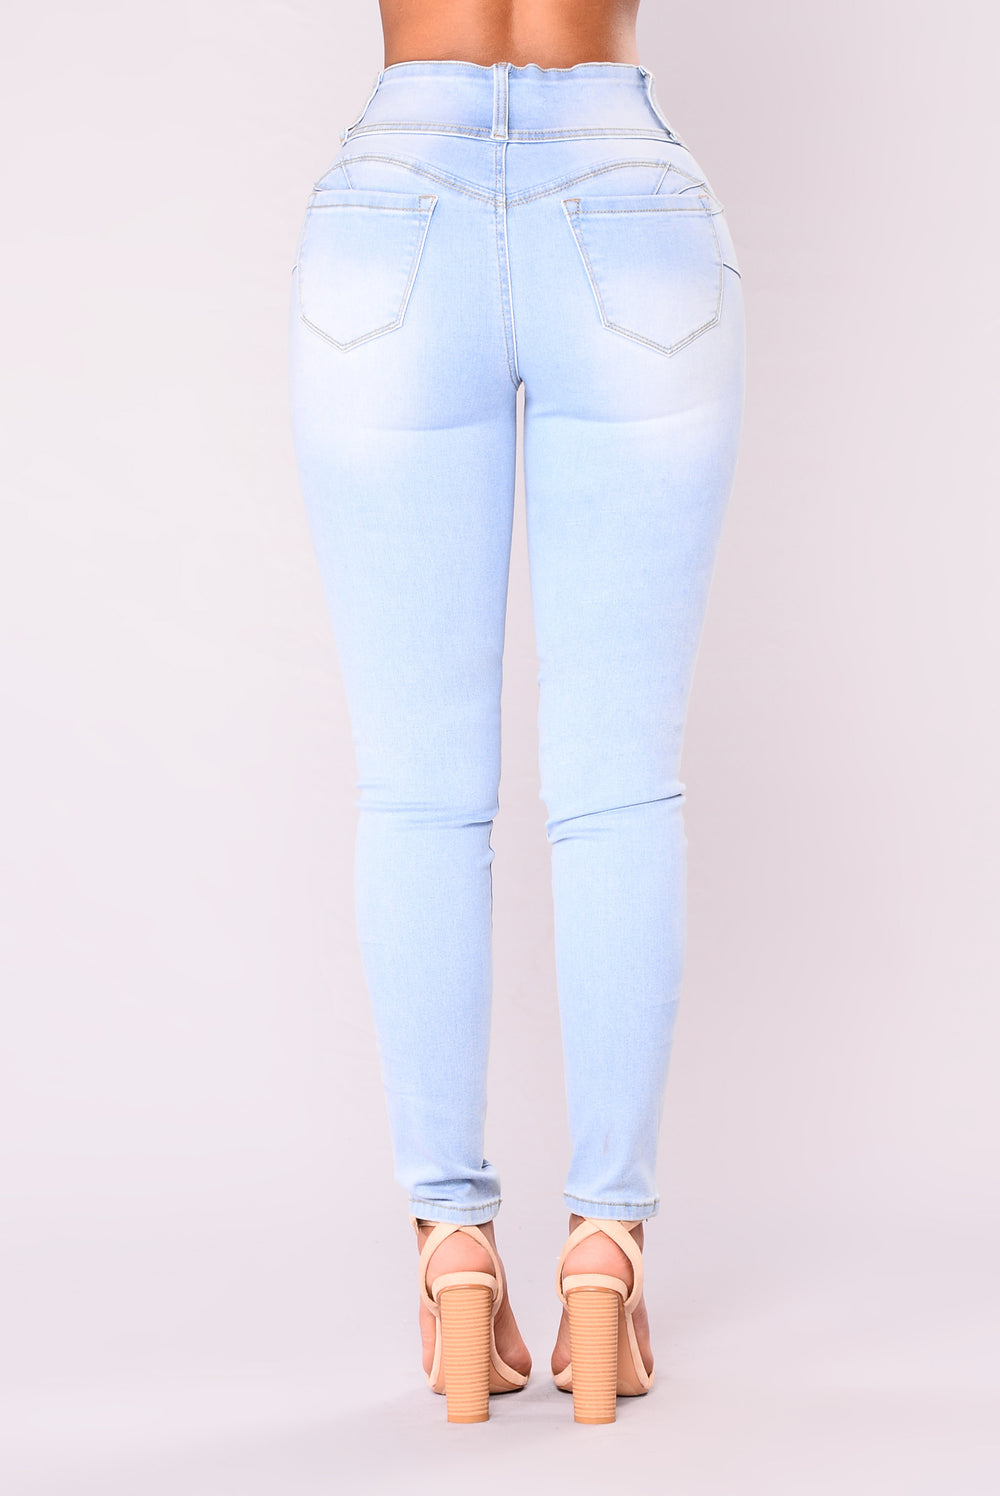 Glow With The Flow Booty Shaping Jeans - Light